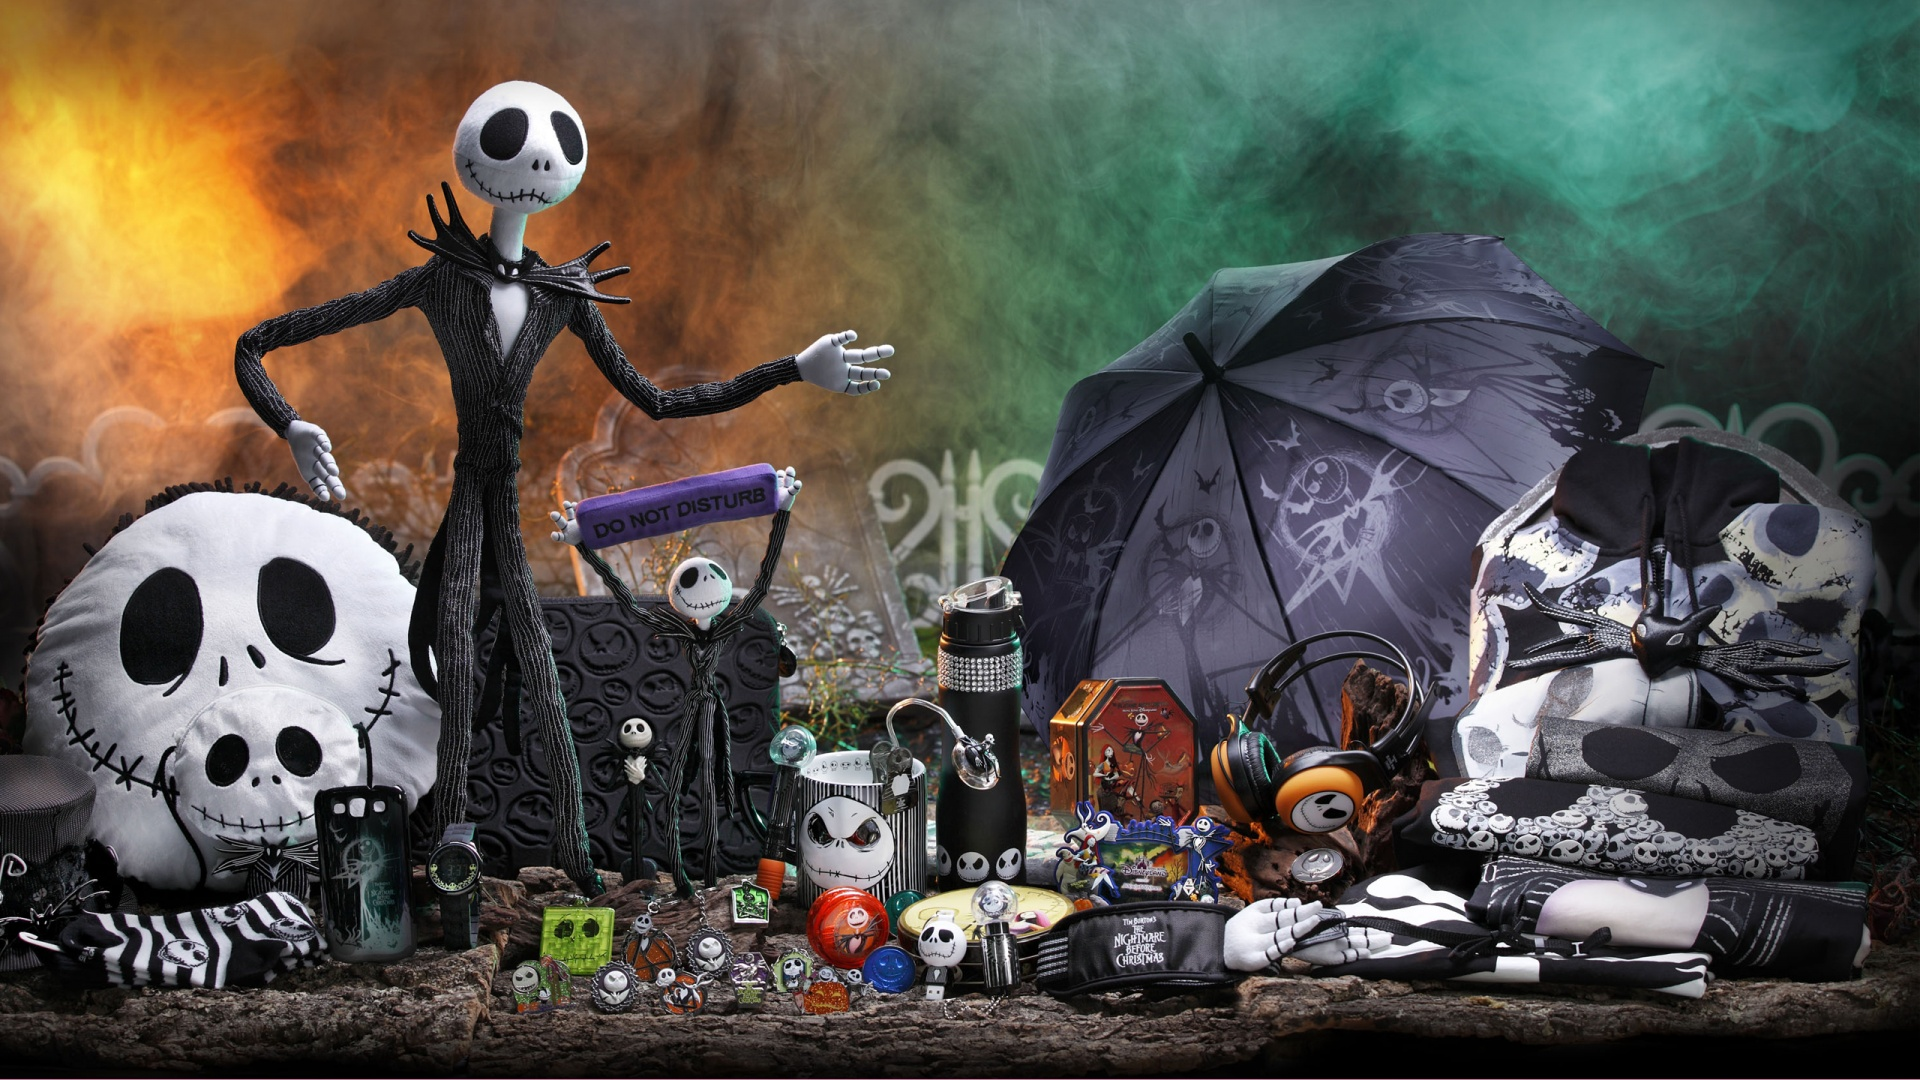 It's just a photo of Juicy Nightmare Before Christmas Downloads